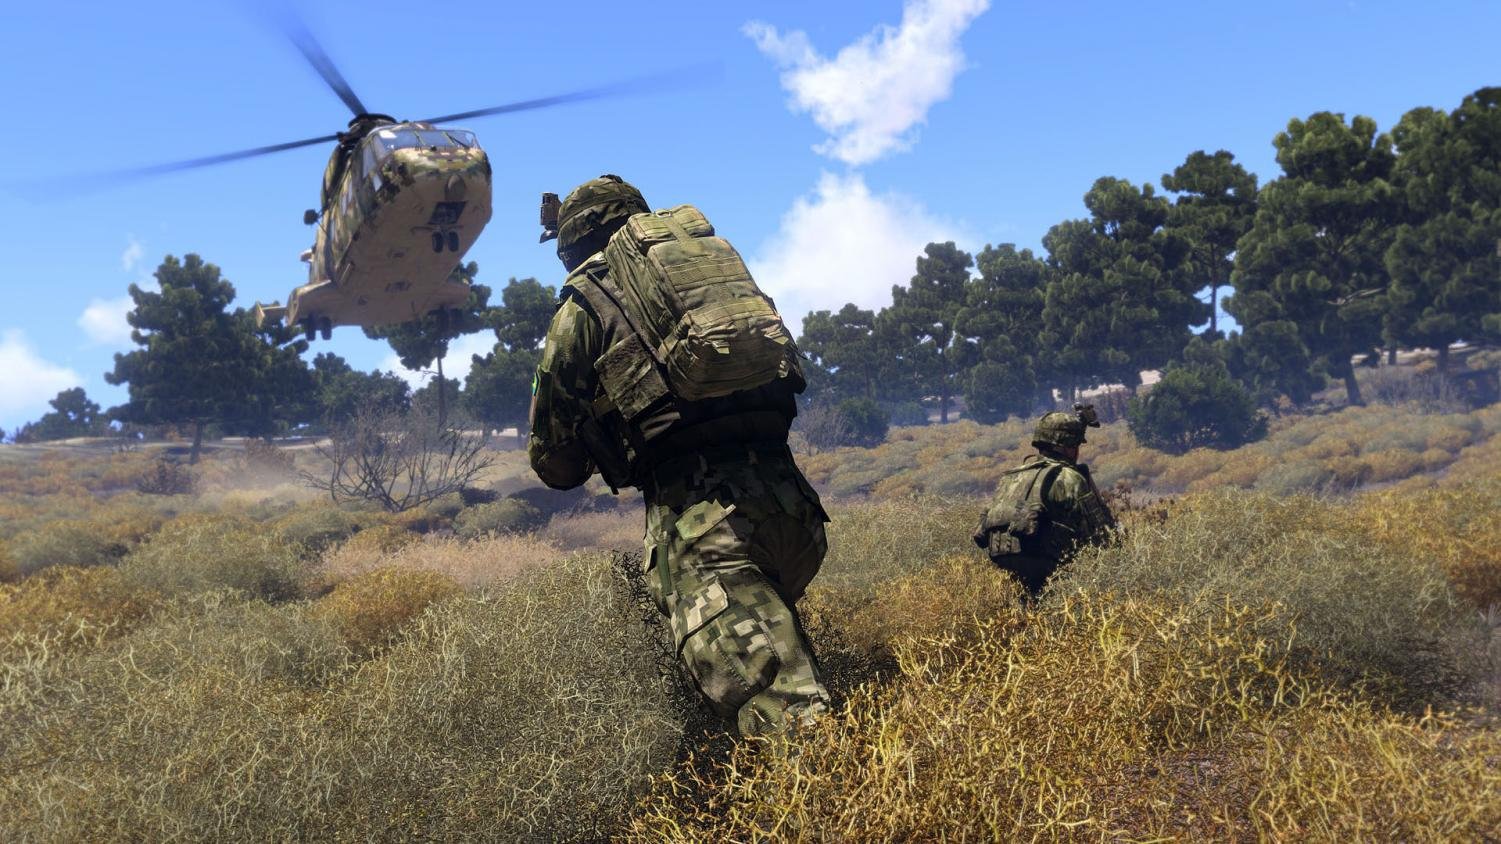 A screenshot from Arma 3's Steam page.